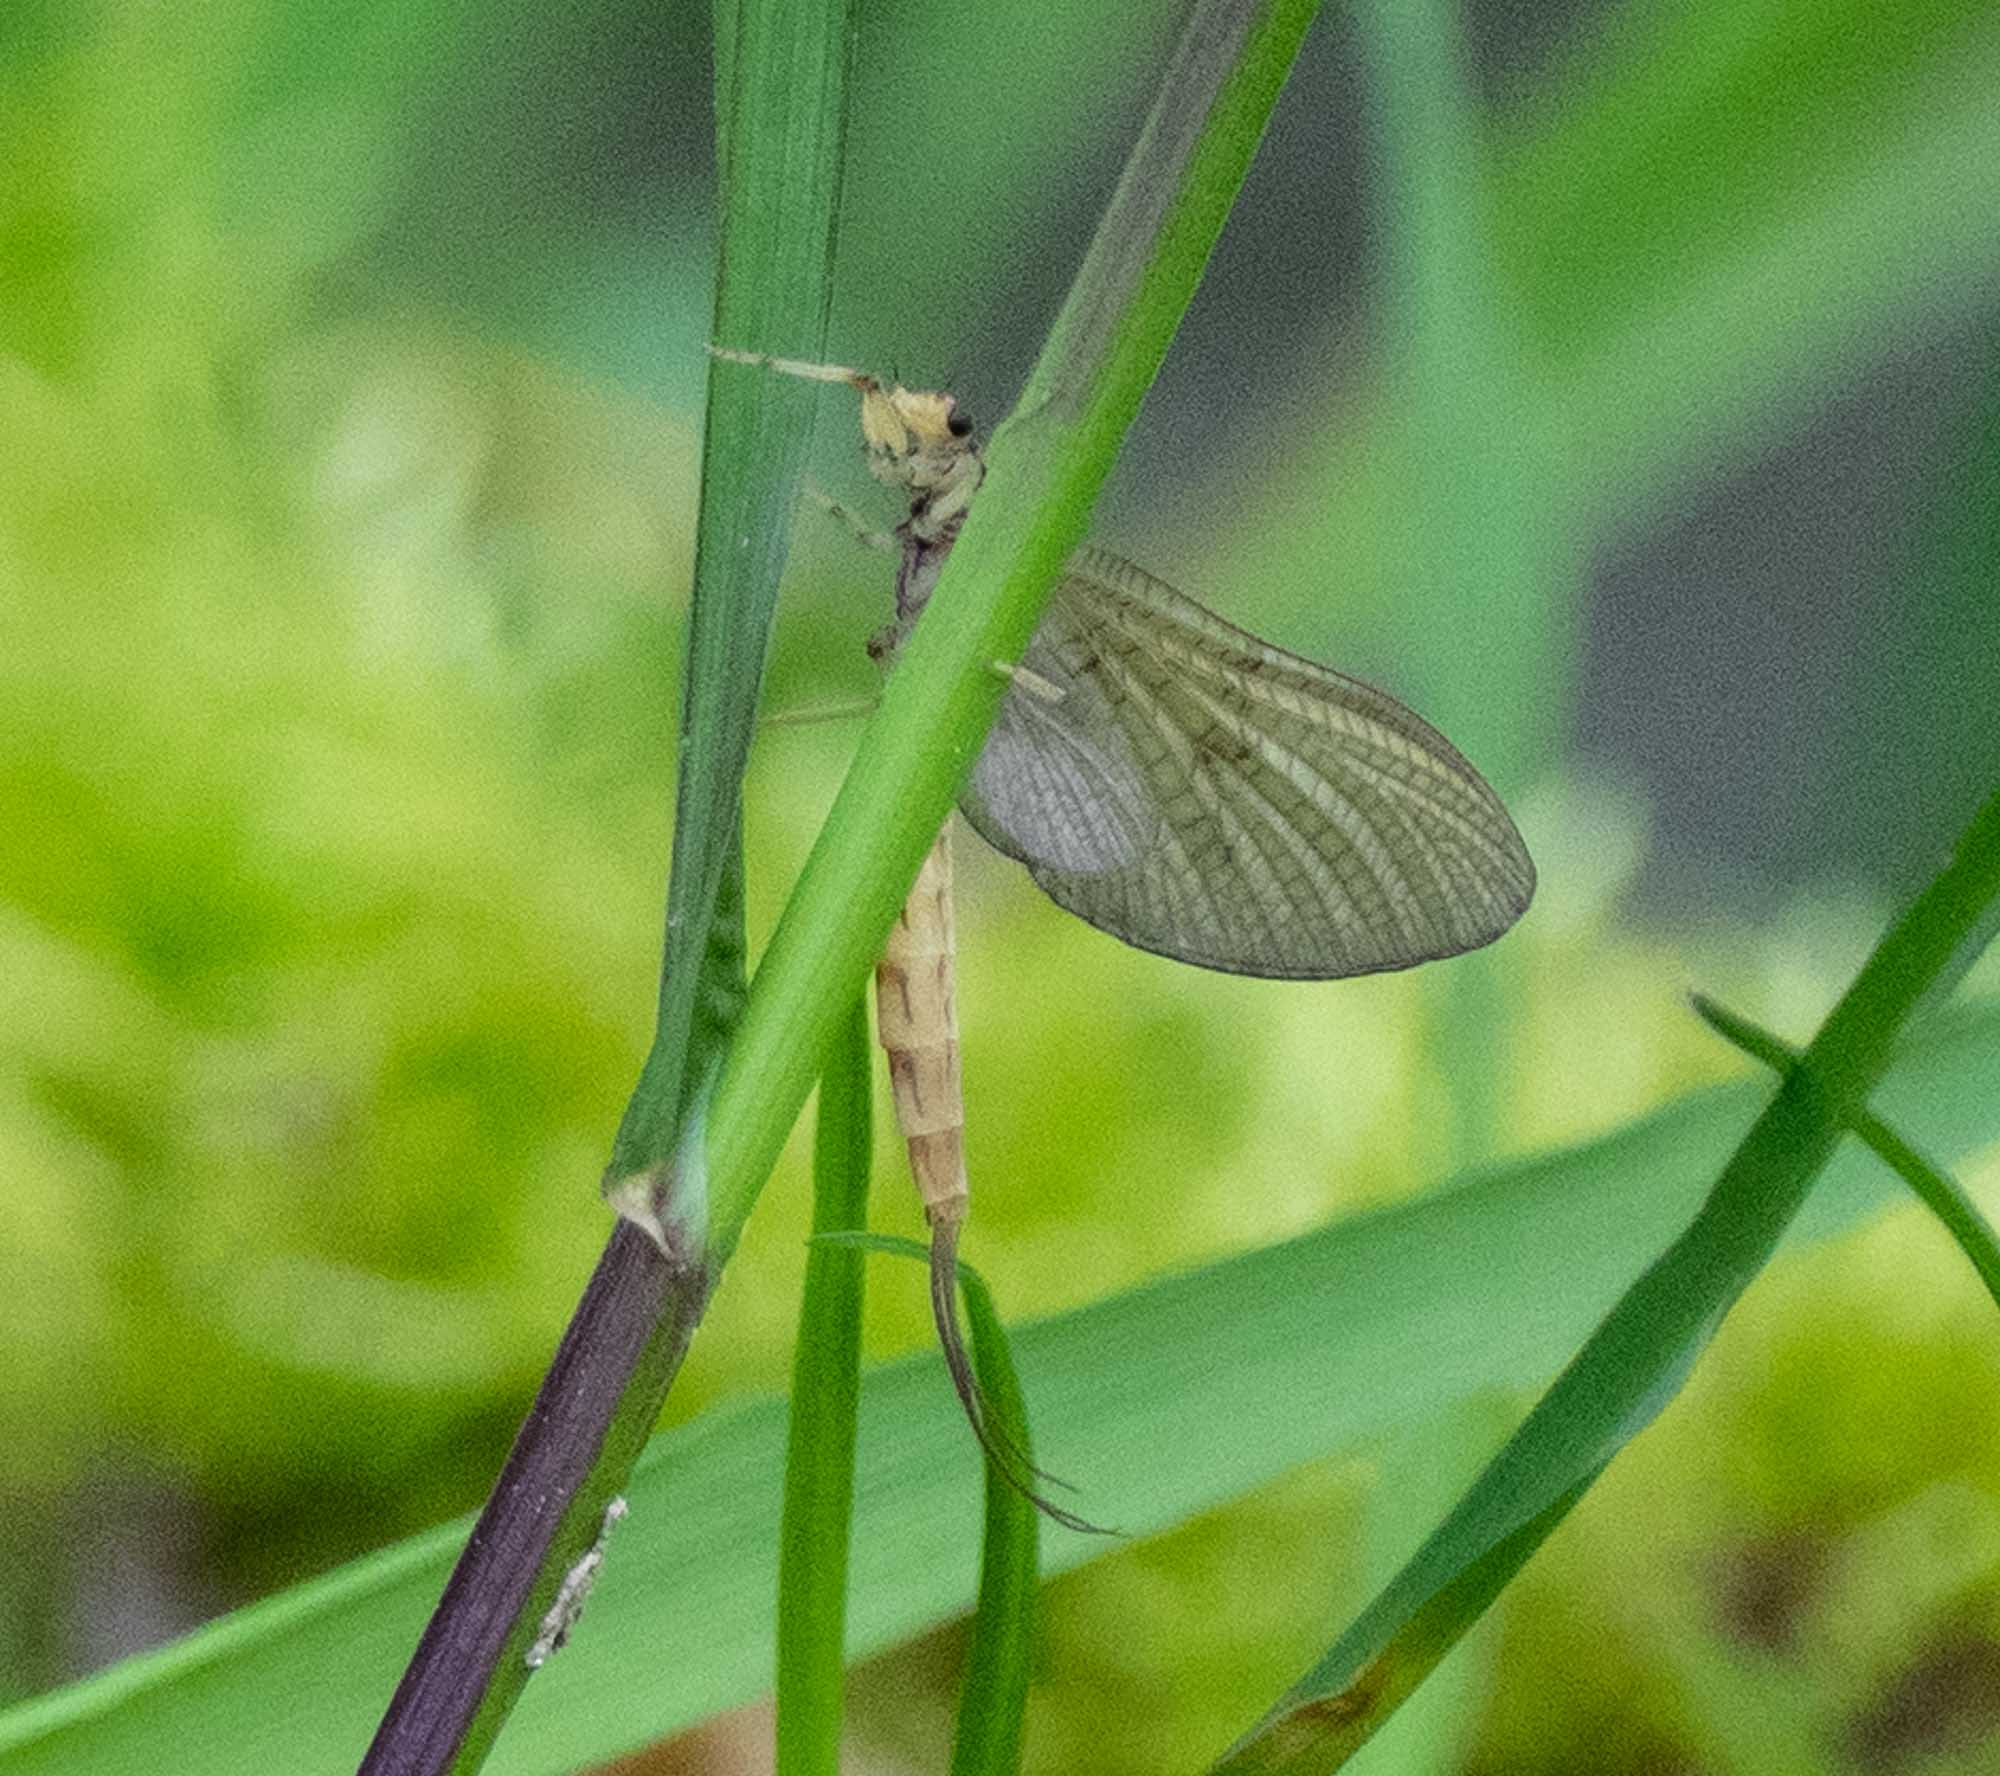 The dipper's quarry - an adult mayfly